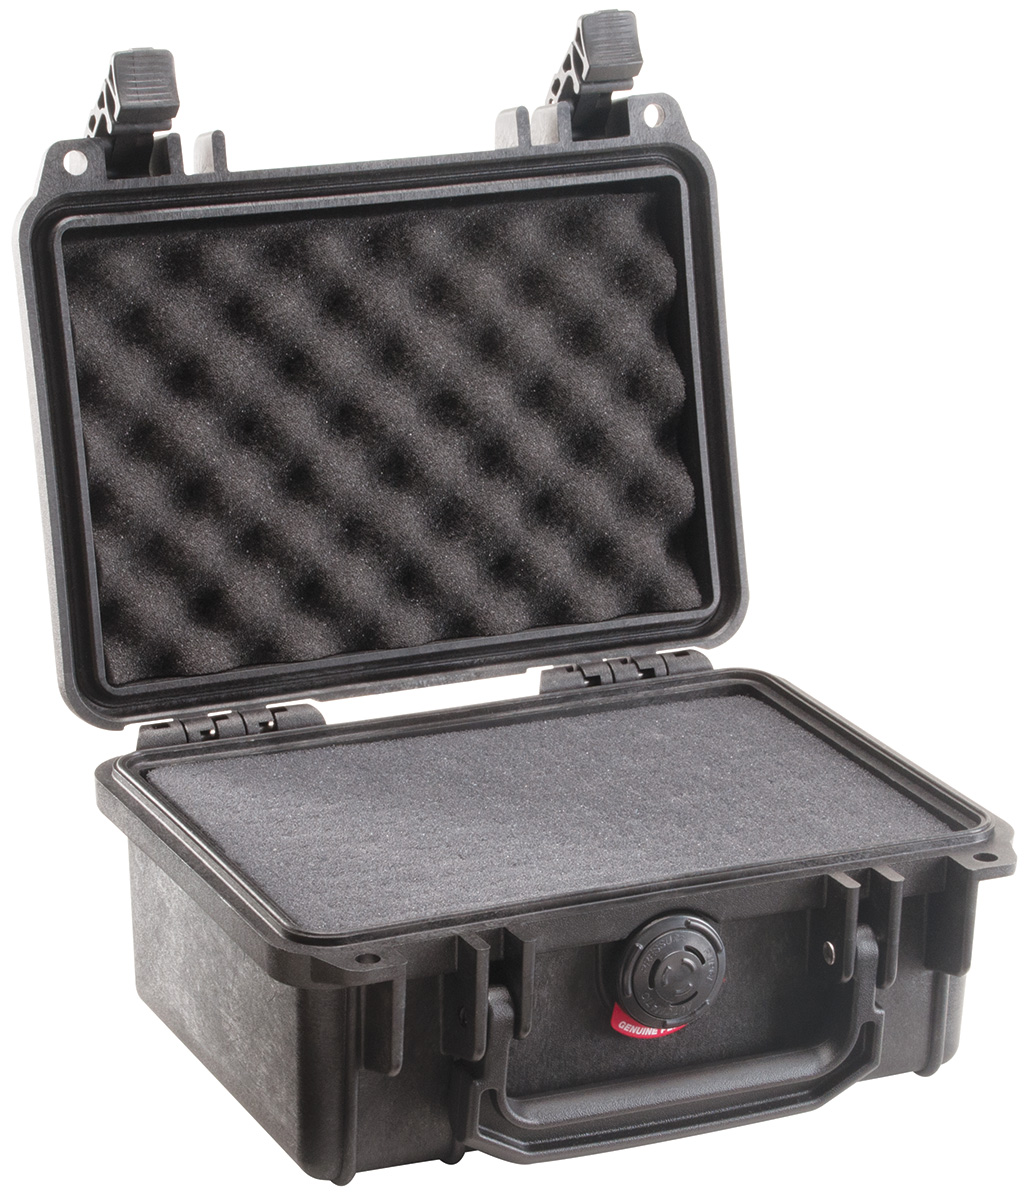 pelican peli products 1150 watertight protective gopro case